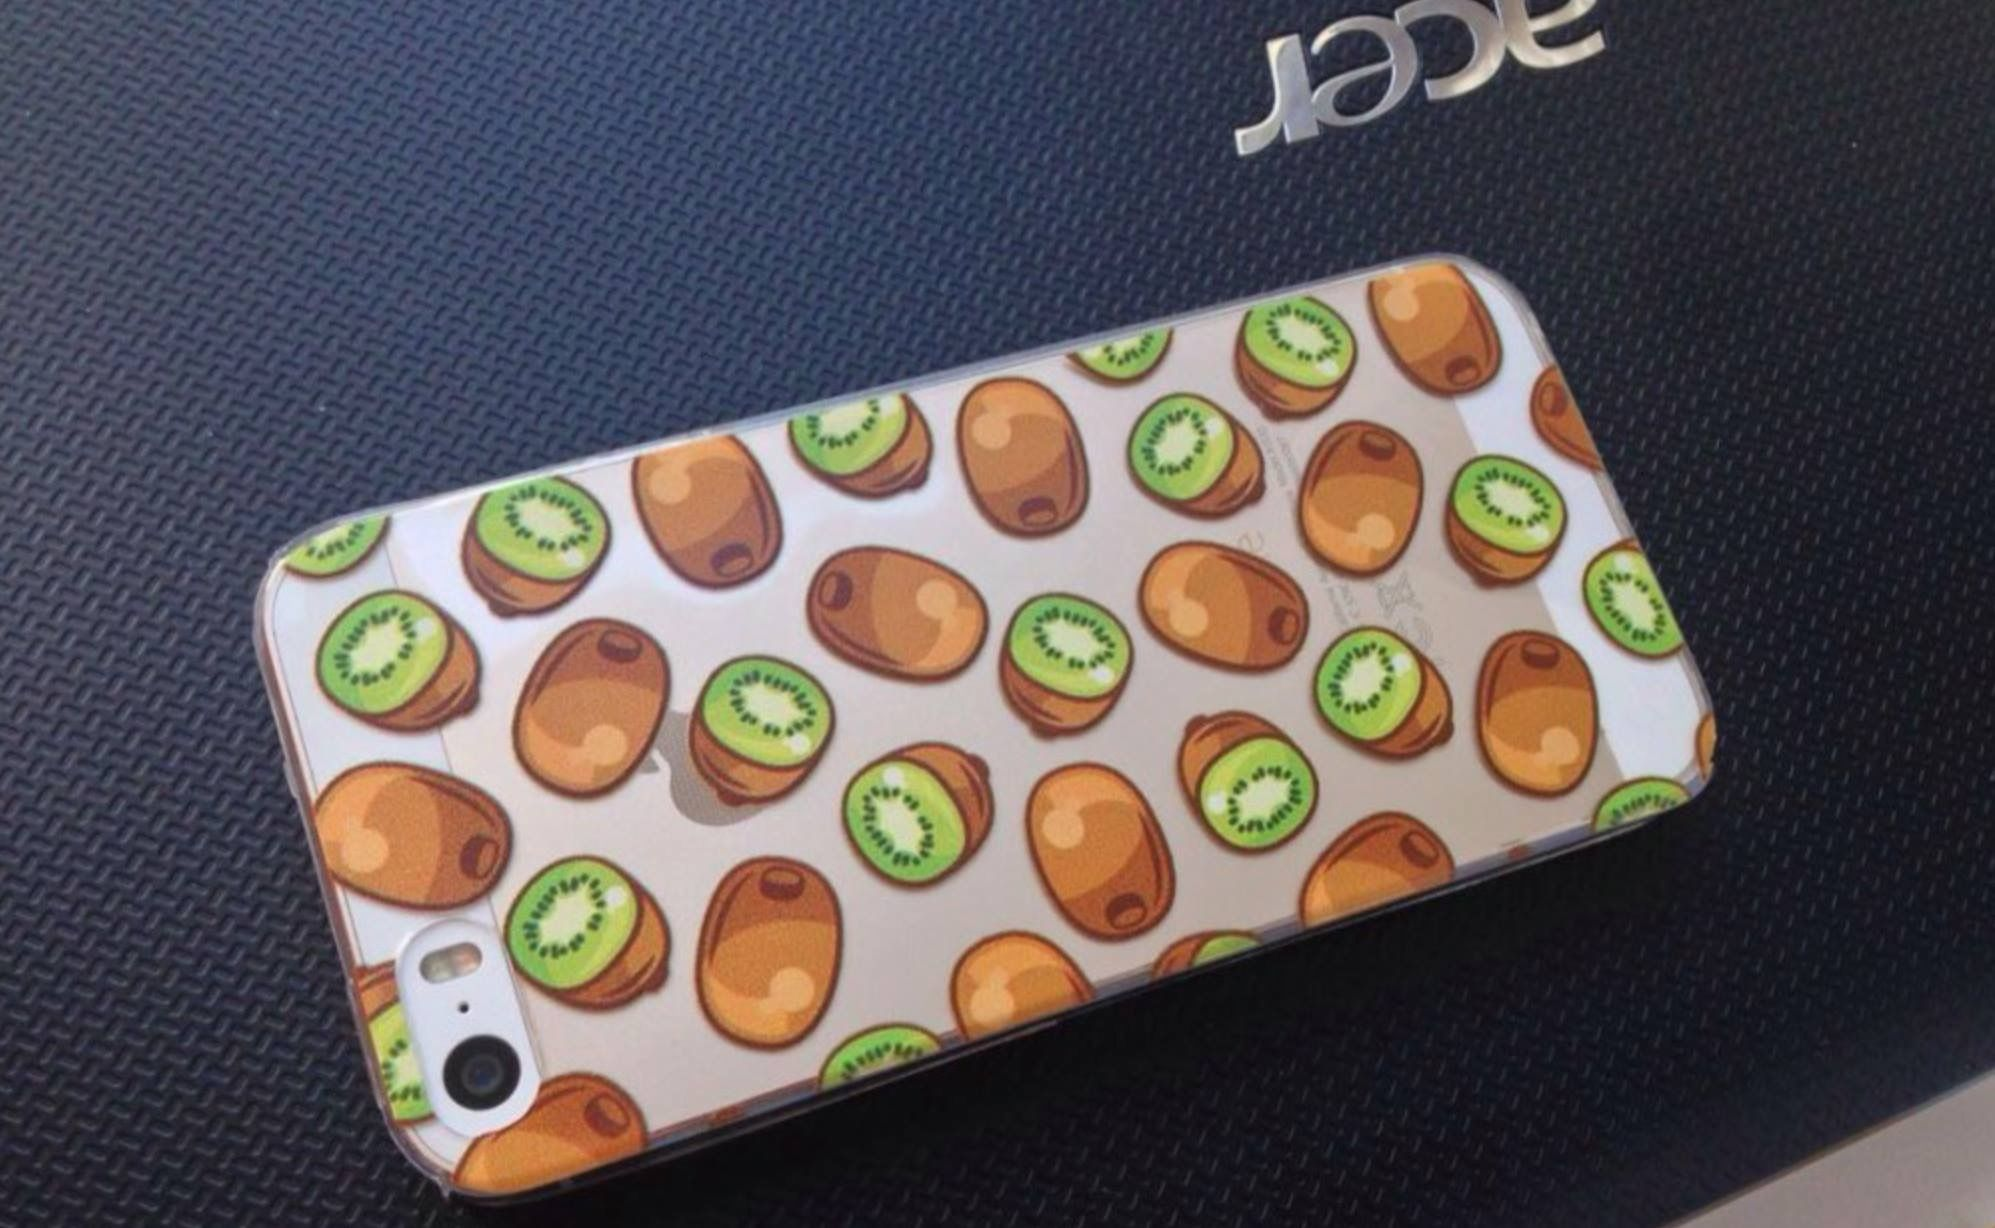 *My Fruity Phone 🍉* This phone case is a cleaver way to state your own style! If you are a fan of kiwi or just love the color of it, it doesn't matter here! 😍